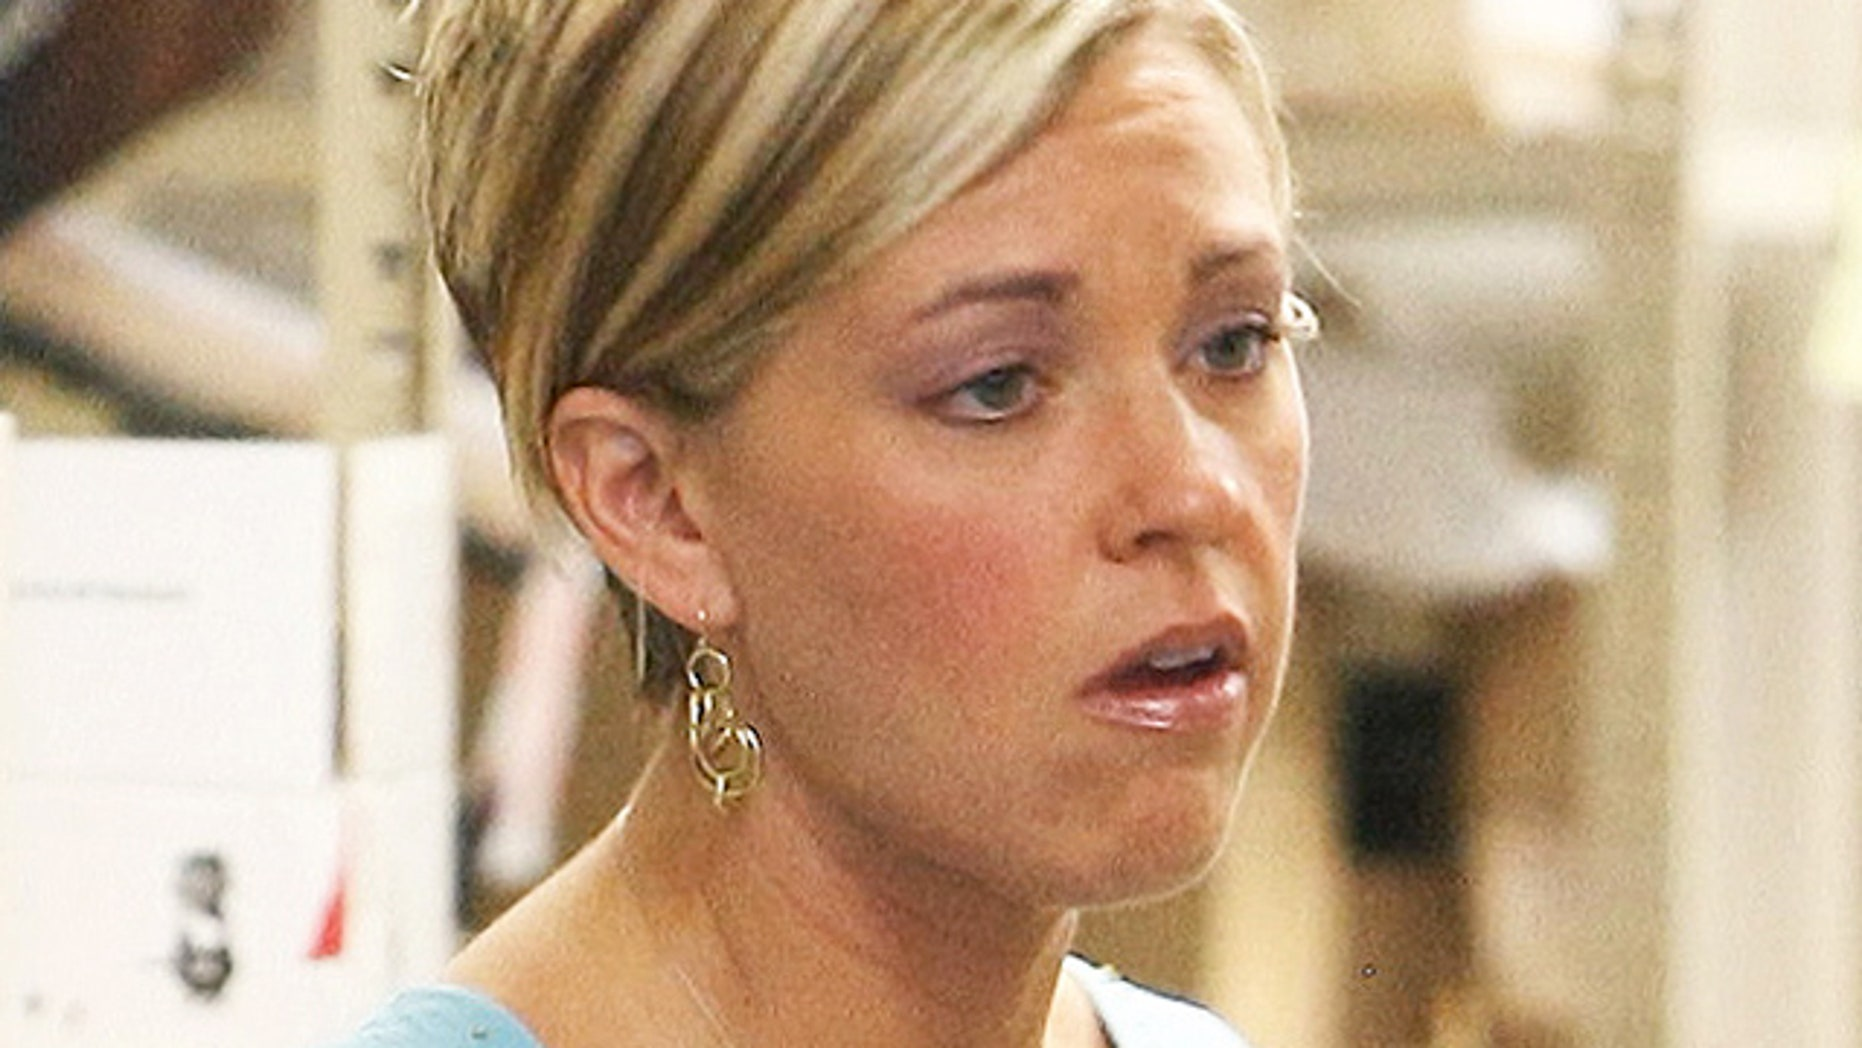 Aug. 27, 2009: A judge has told the reality TV mom to pay up!